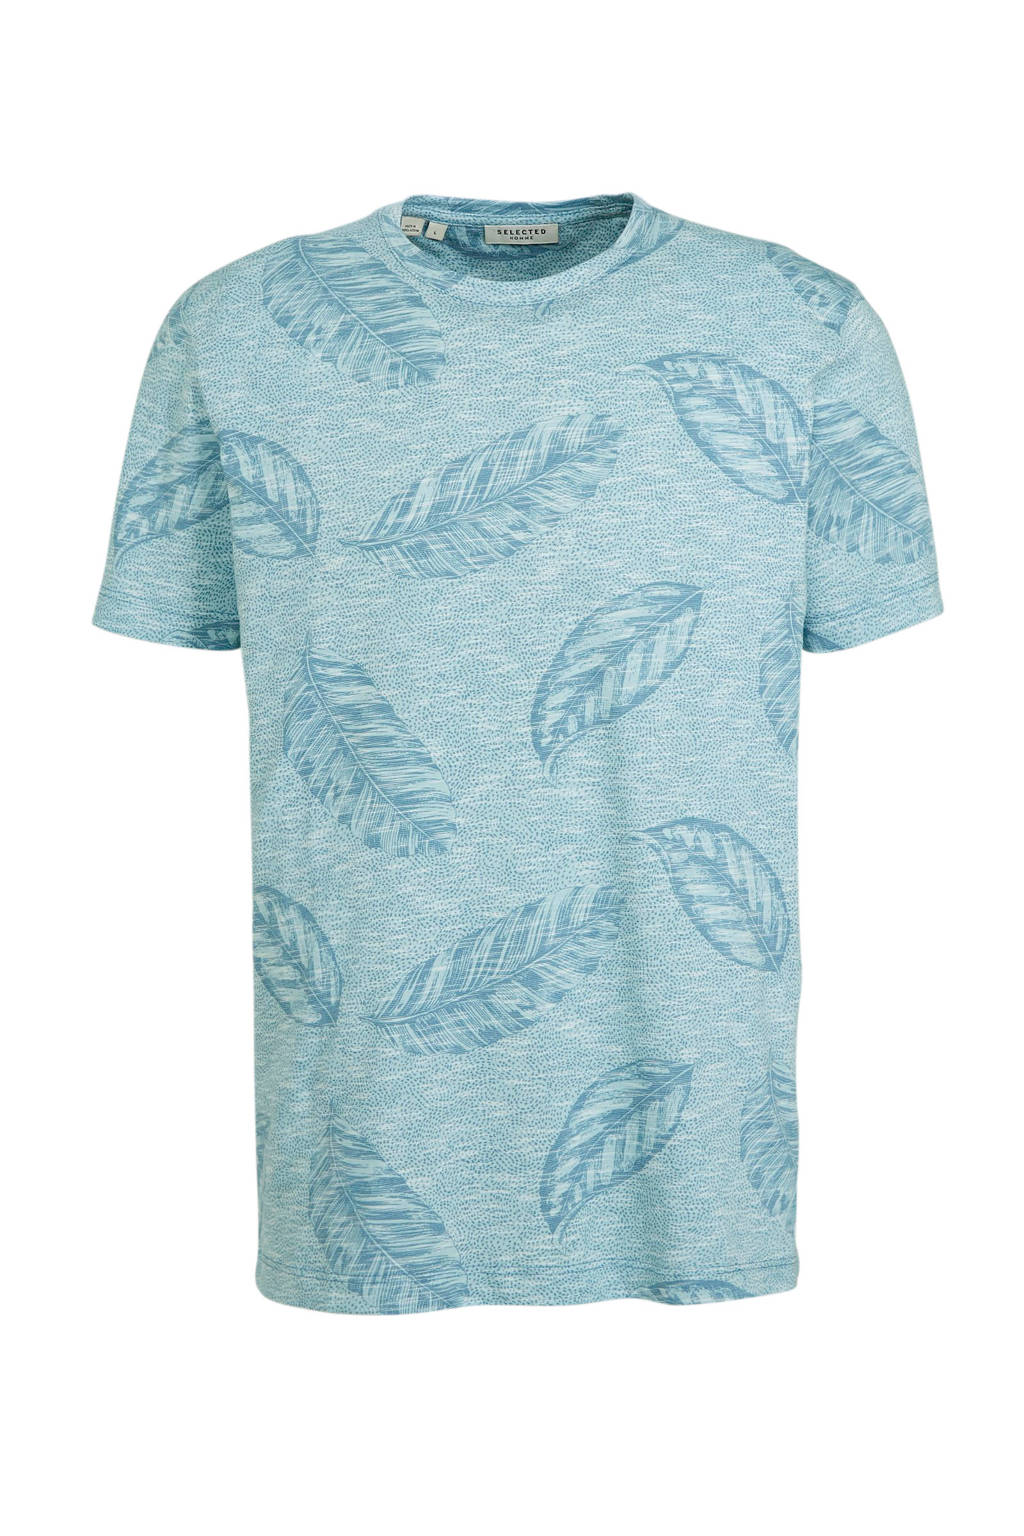 SELECTED HOMME T-shirt met all over print lichtblauw, Lichtblauw